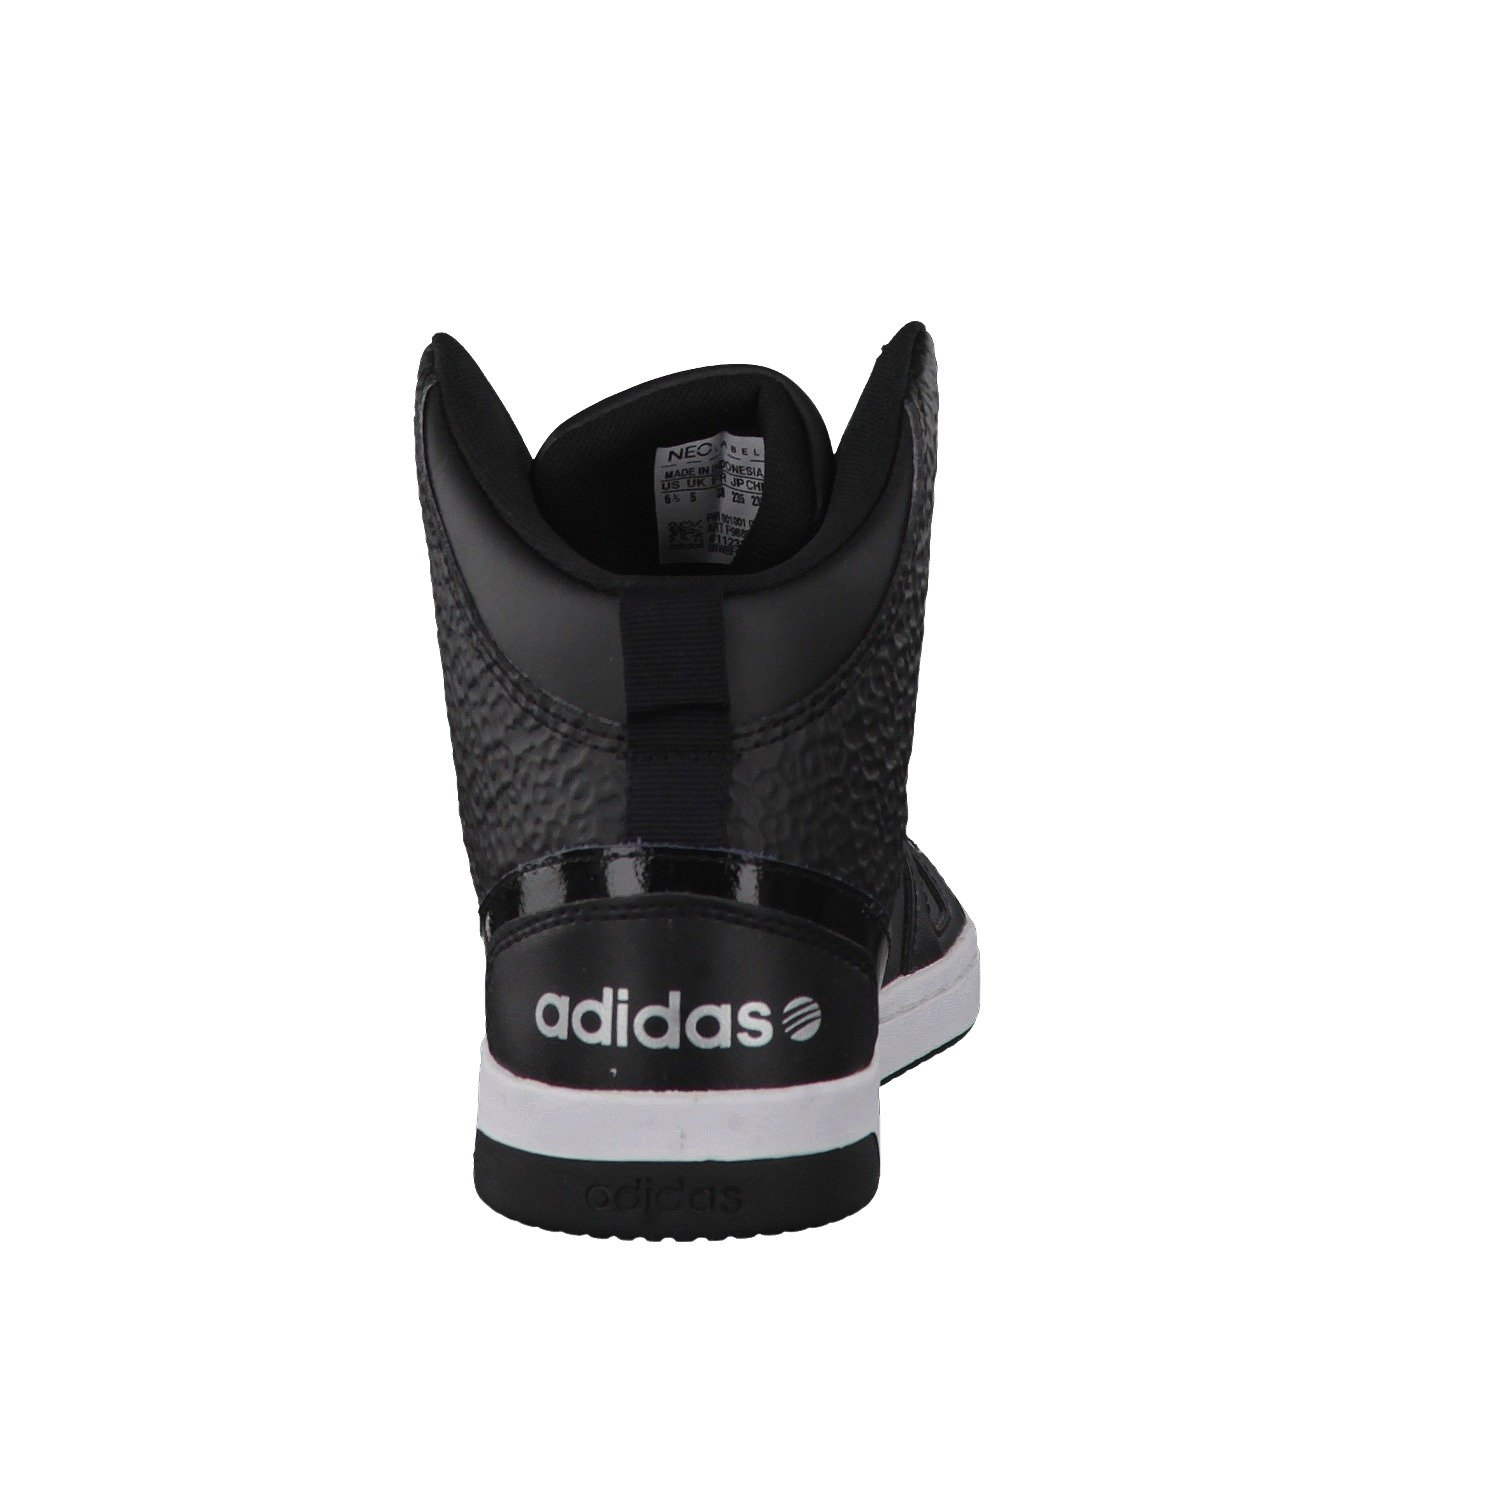 Baskets Femme Hoops Neo Adidas Team Sacs Et MidChaussures W2YEDHIe9